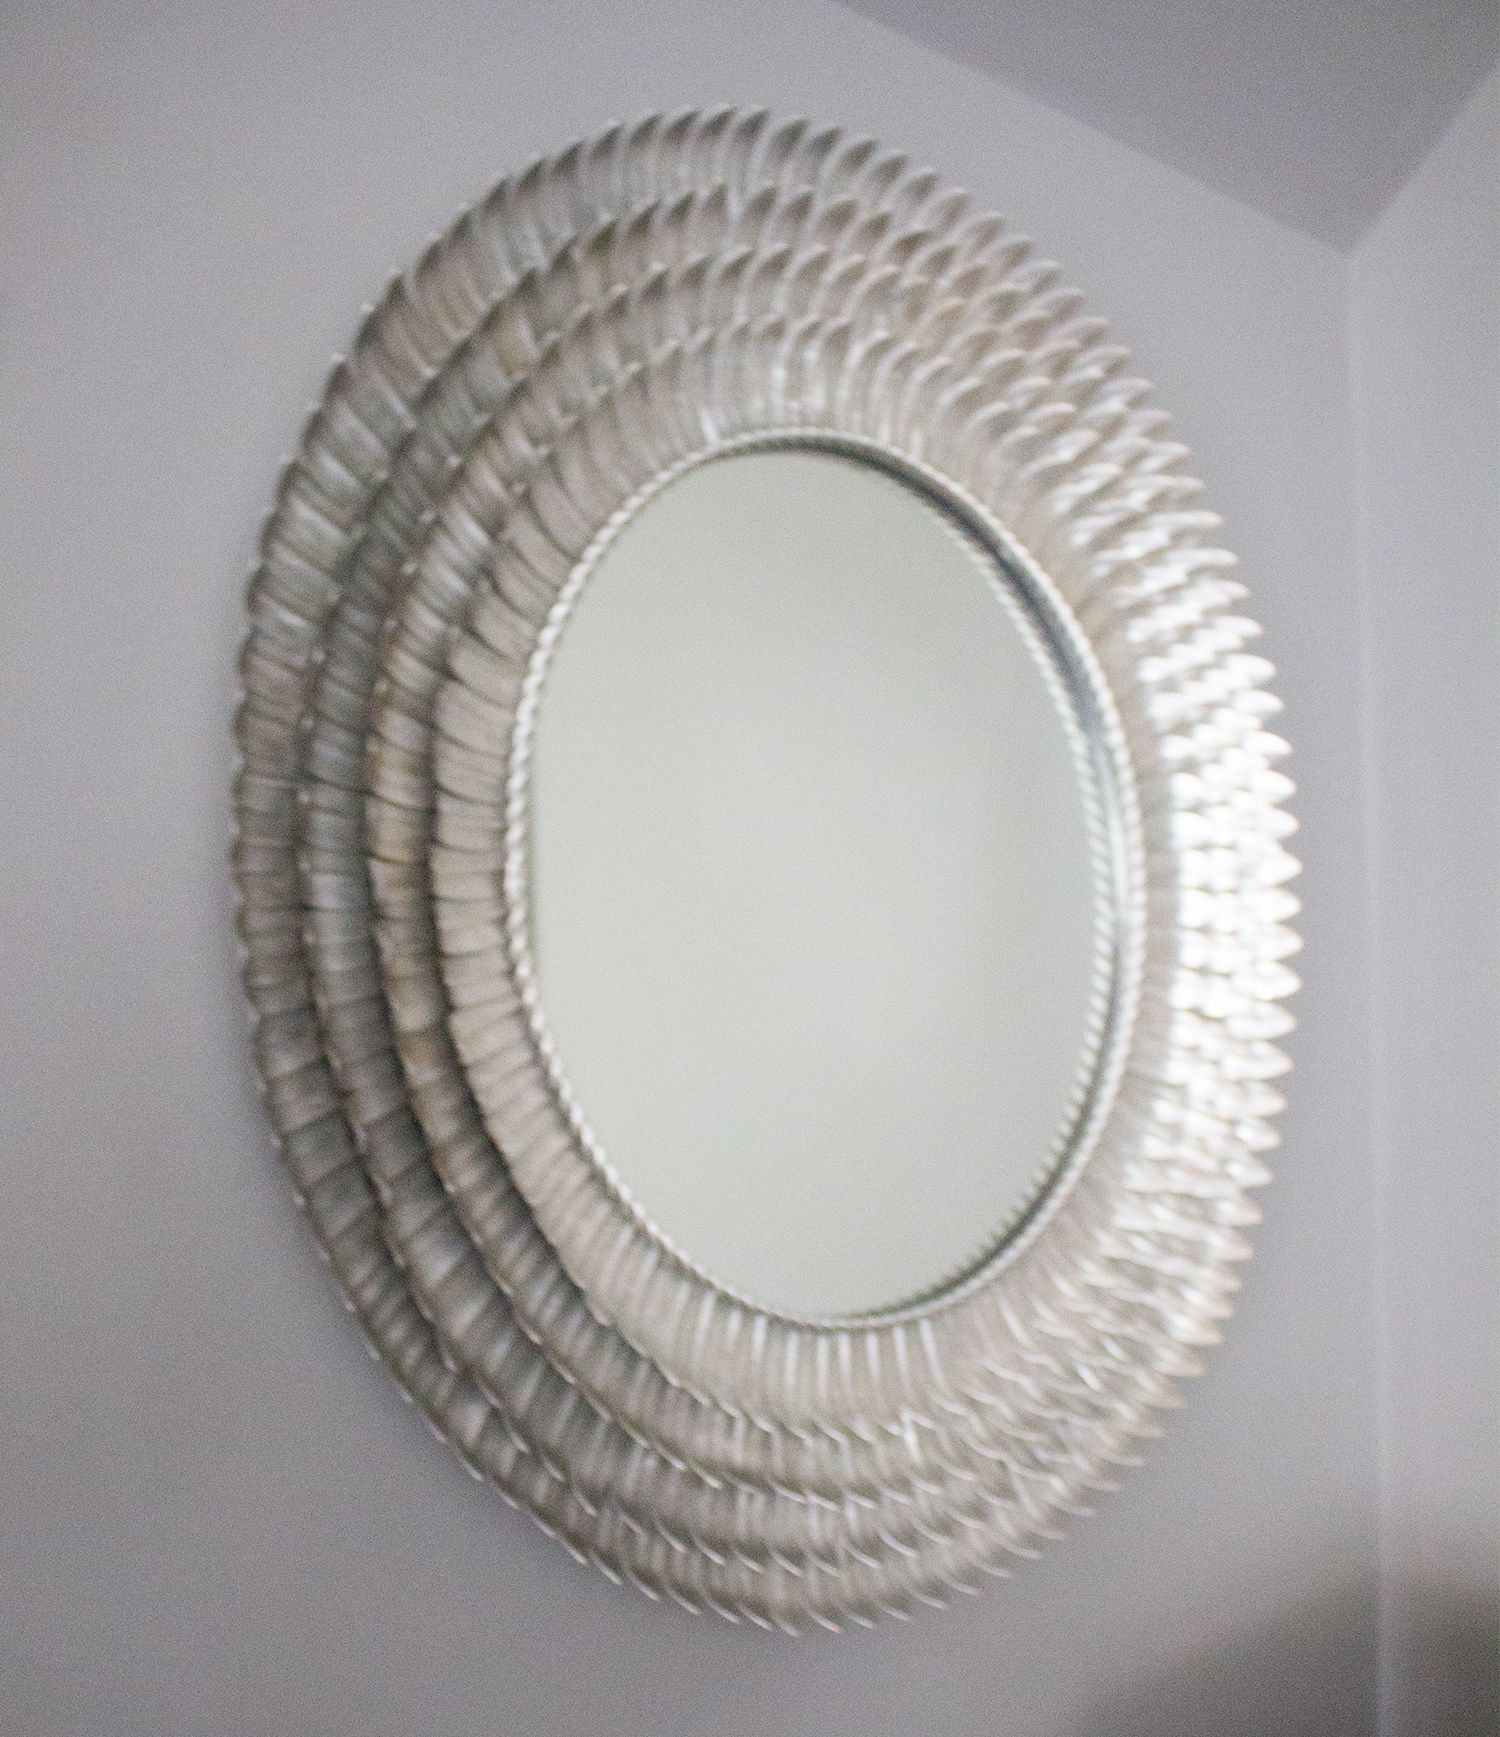 A close up of the silver mirror, with a metal feathered frame.